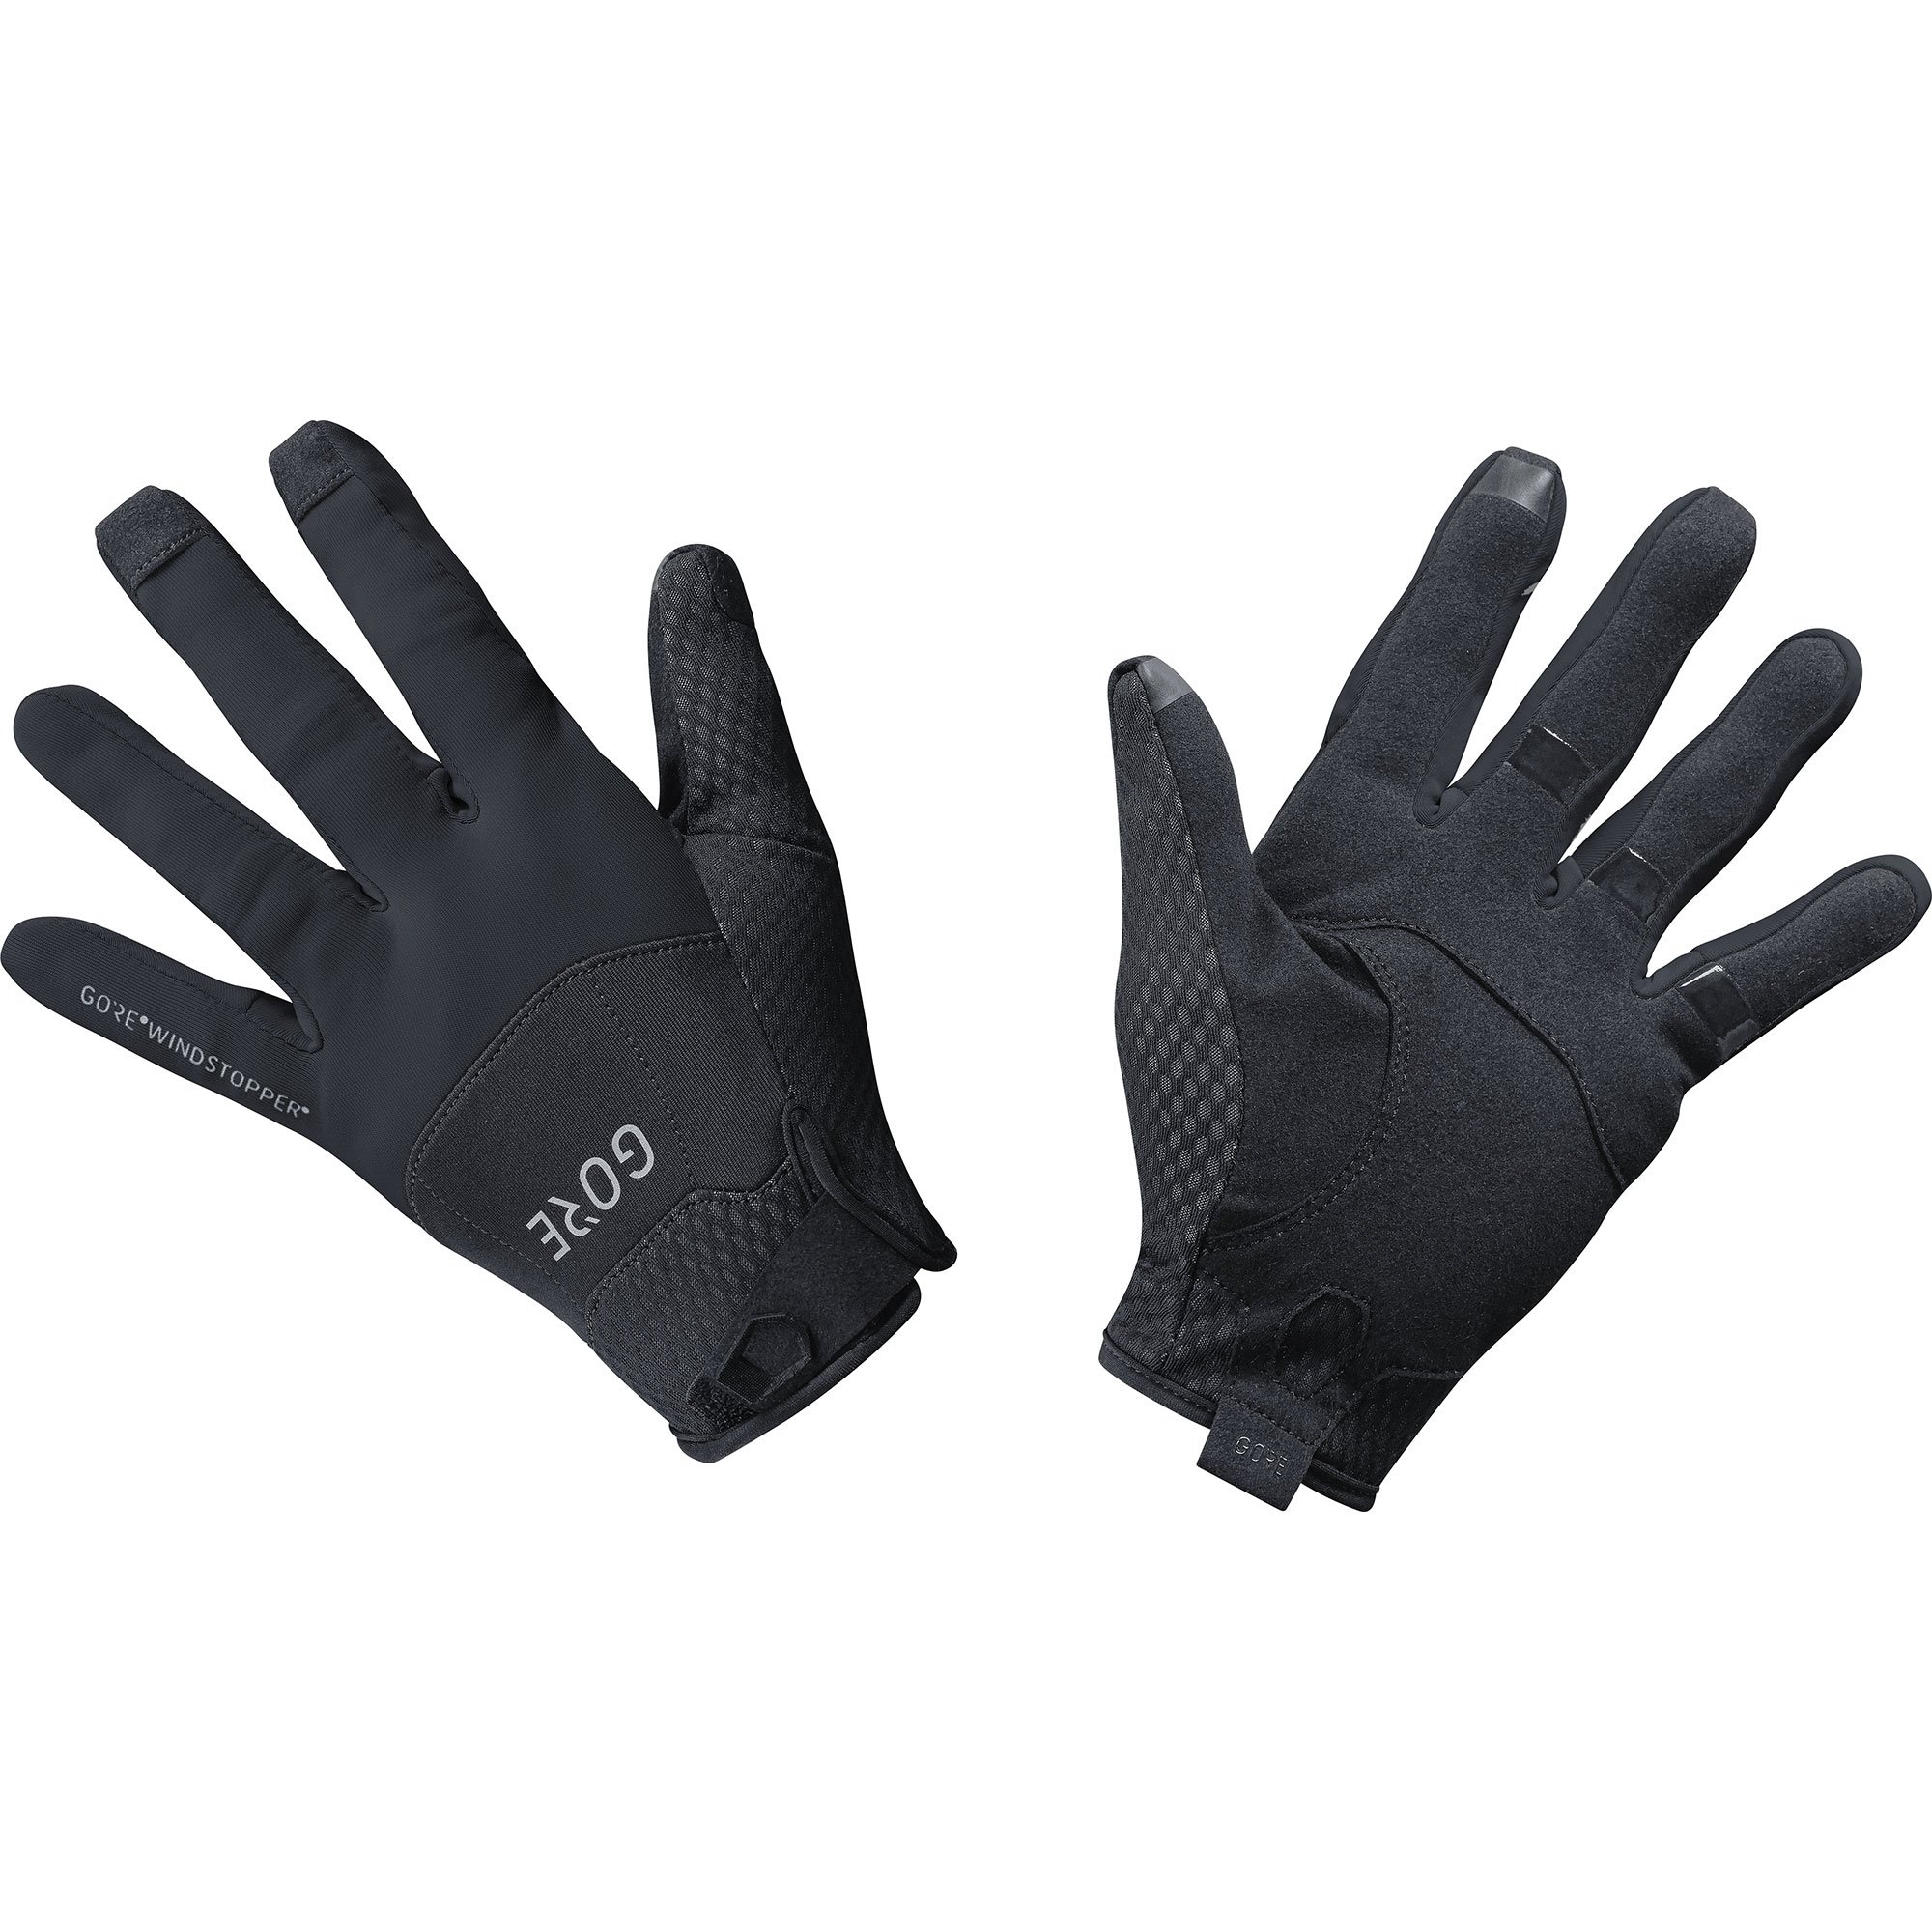 GORE WEAR Windproof Cycling Gloves, C5 Windstopper Gloves, Size: M, Color: Black, 100125